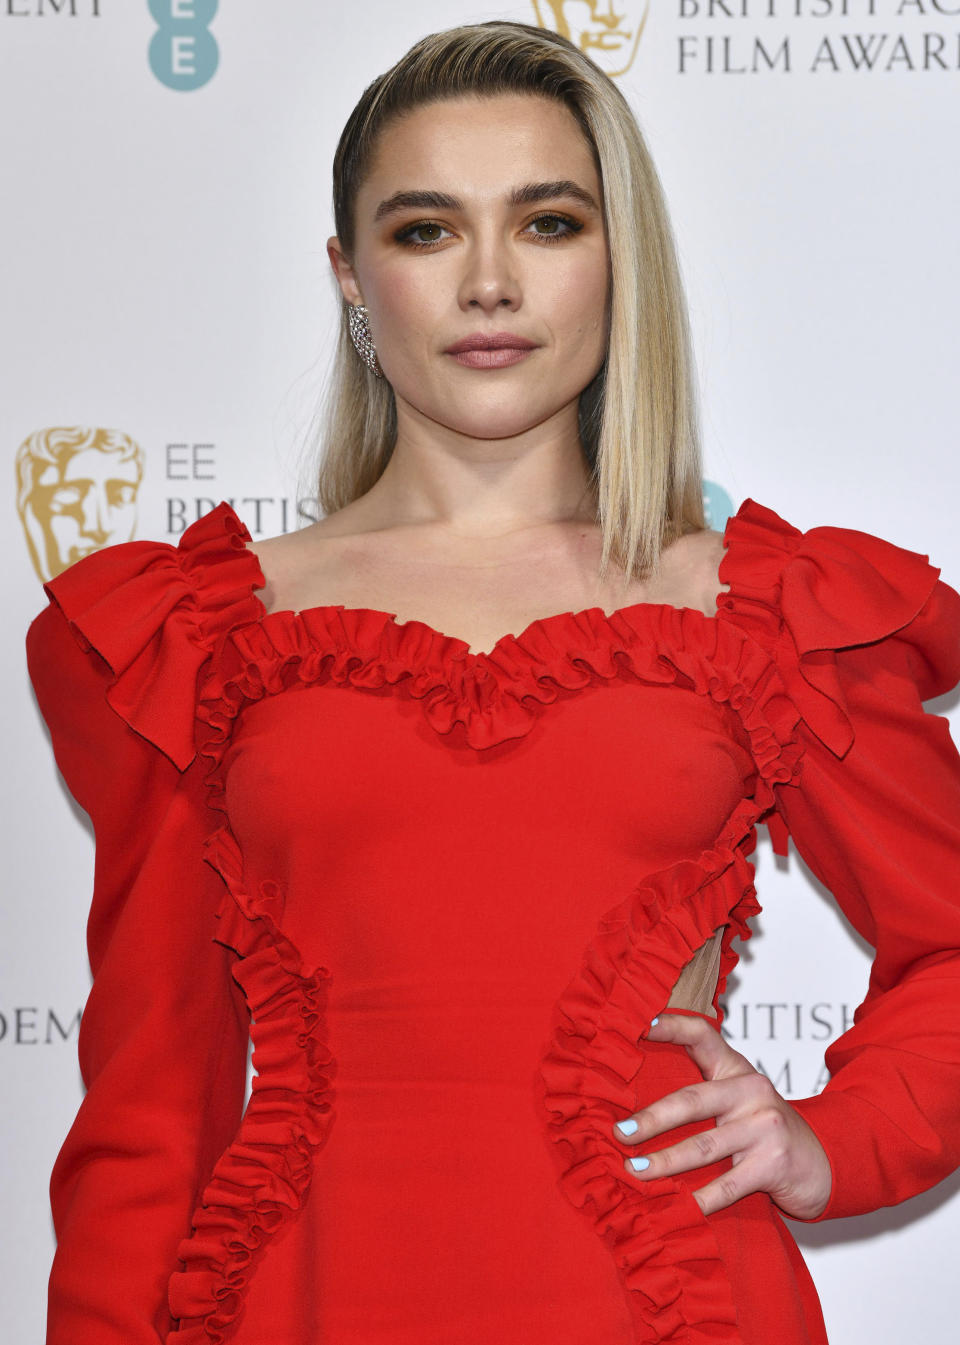 Florence Pugh has previously addressed the criticism she's received for the age gap in her relationship. (zz/KGC-03/STAR MAX/IPx)